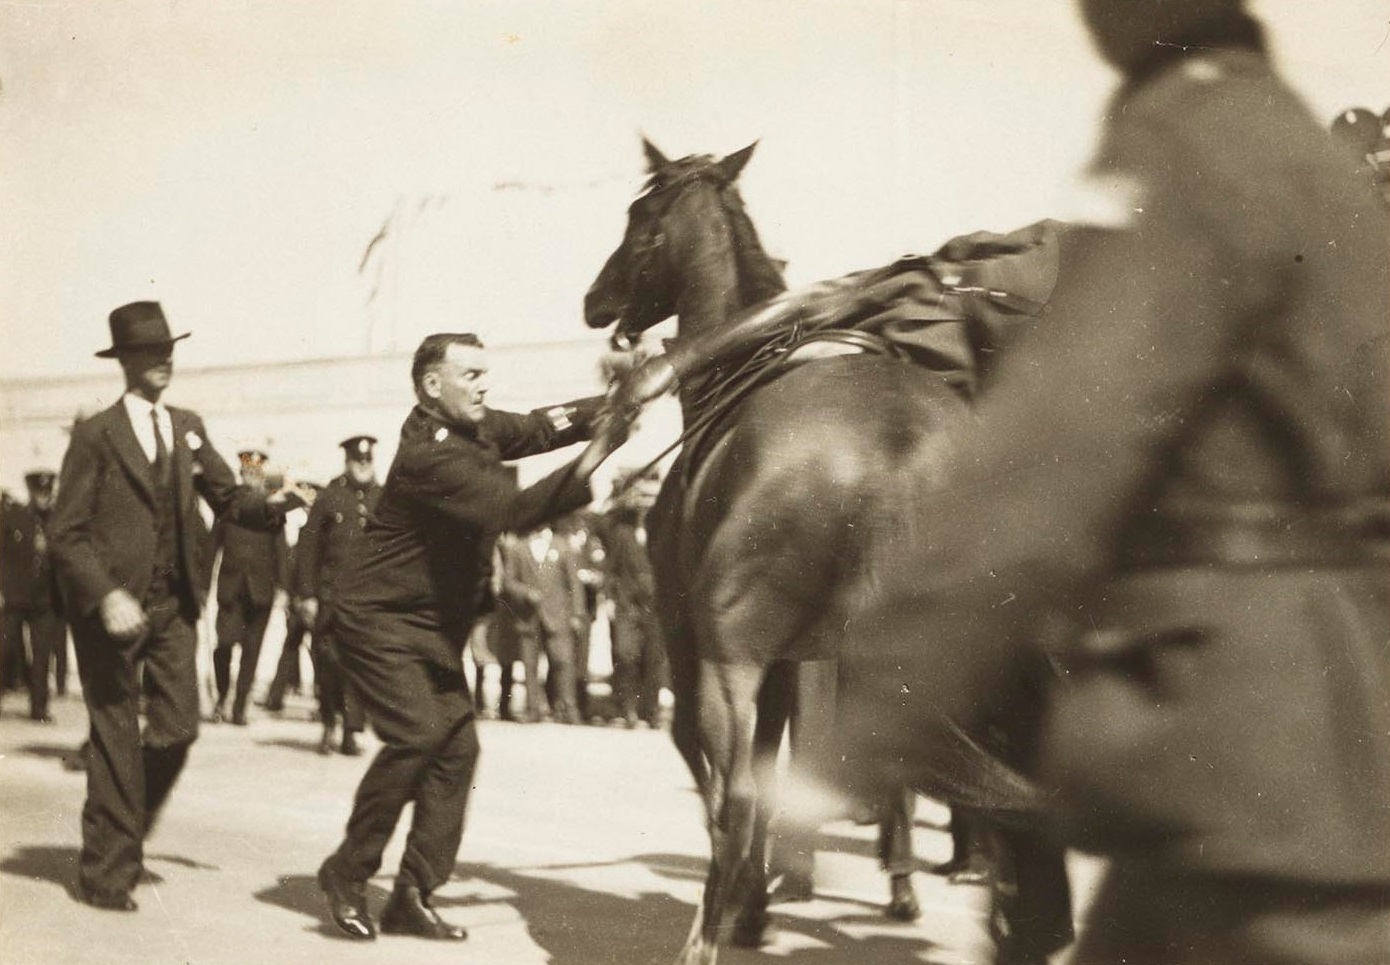 Taken as Capt. de-Groot was dragged off his horse, photograph, from Major Francis Edward De Groot - Papers: Vol. 2 - Opening of Sydney Harbour Bridge, no 10 1932, A 4946